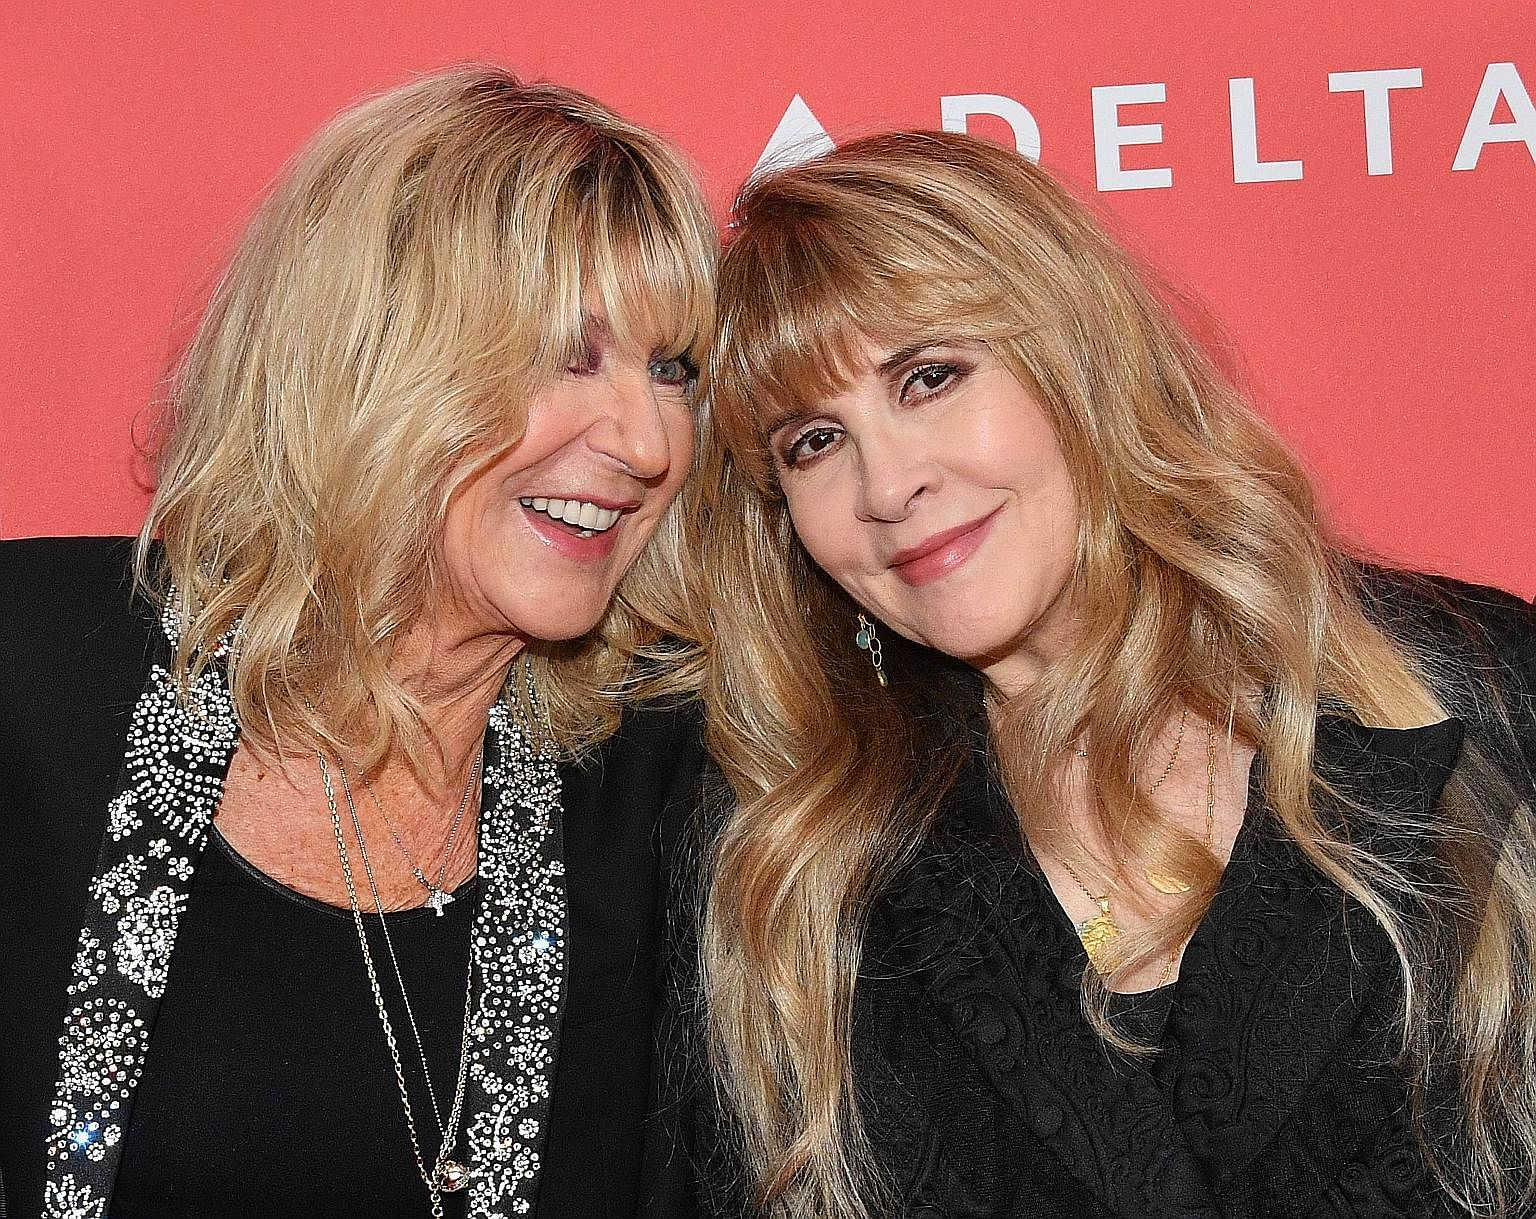 Split in Fleetwood Mac fuels talk of abuse, Entertainment News & Top